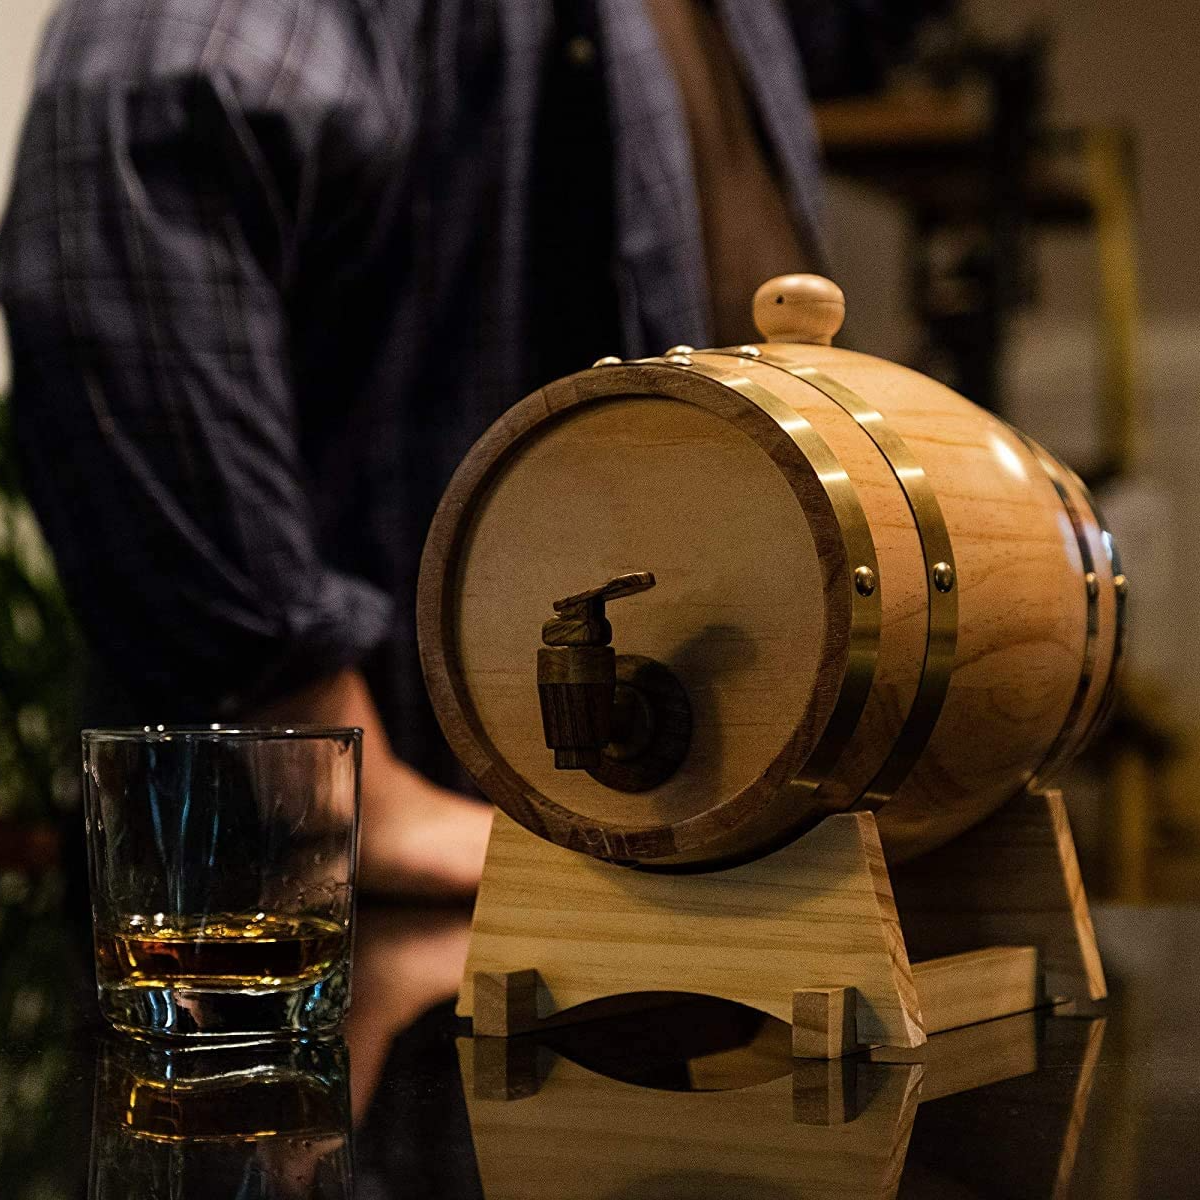 Father's Day Gift🎁Vintage Wood Whiskey Barrel Dispenser, for Storing Whiskey, Beer, Wine, Bourbon, Tequila, Rum, Hot Sauce